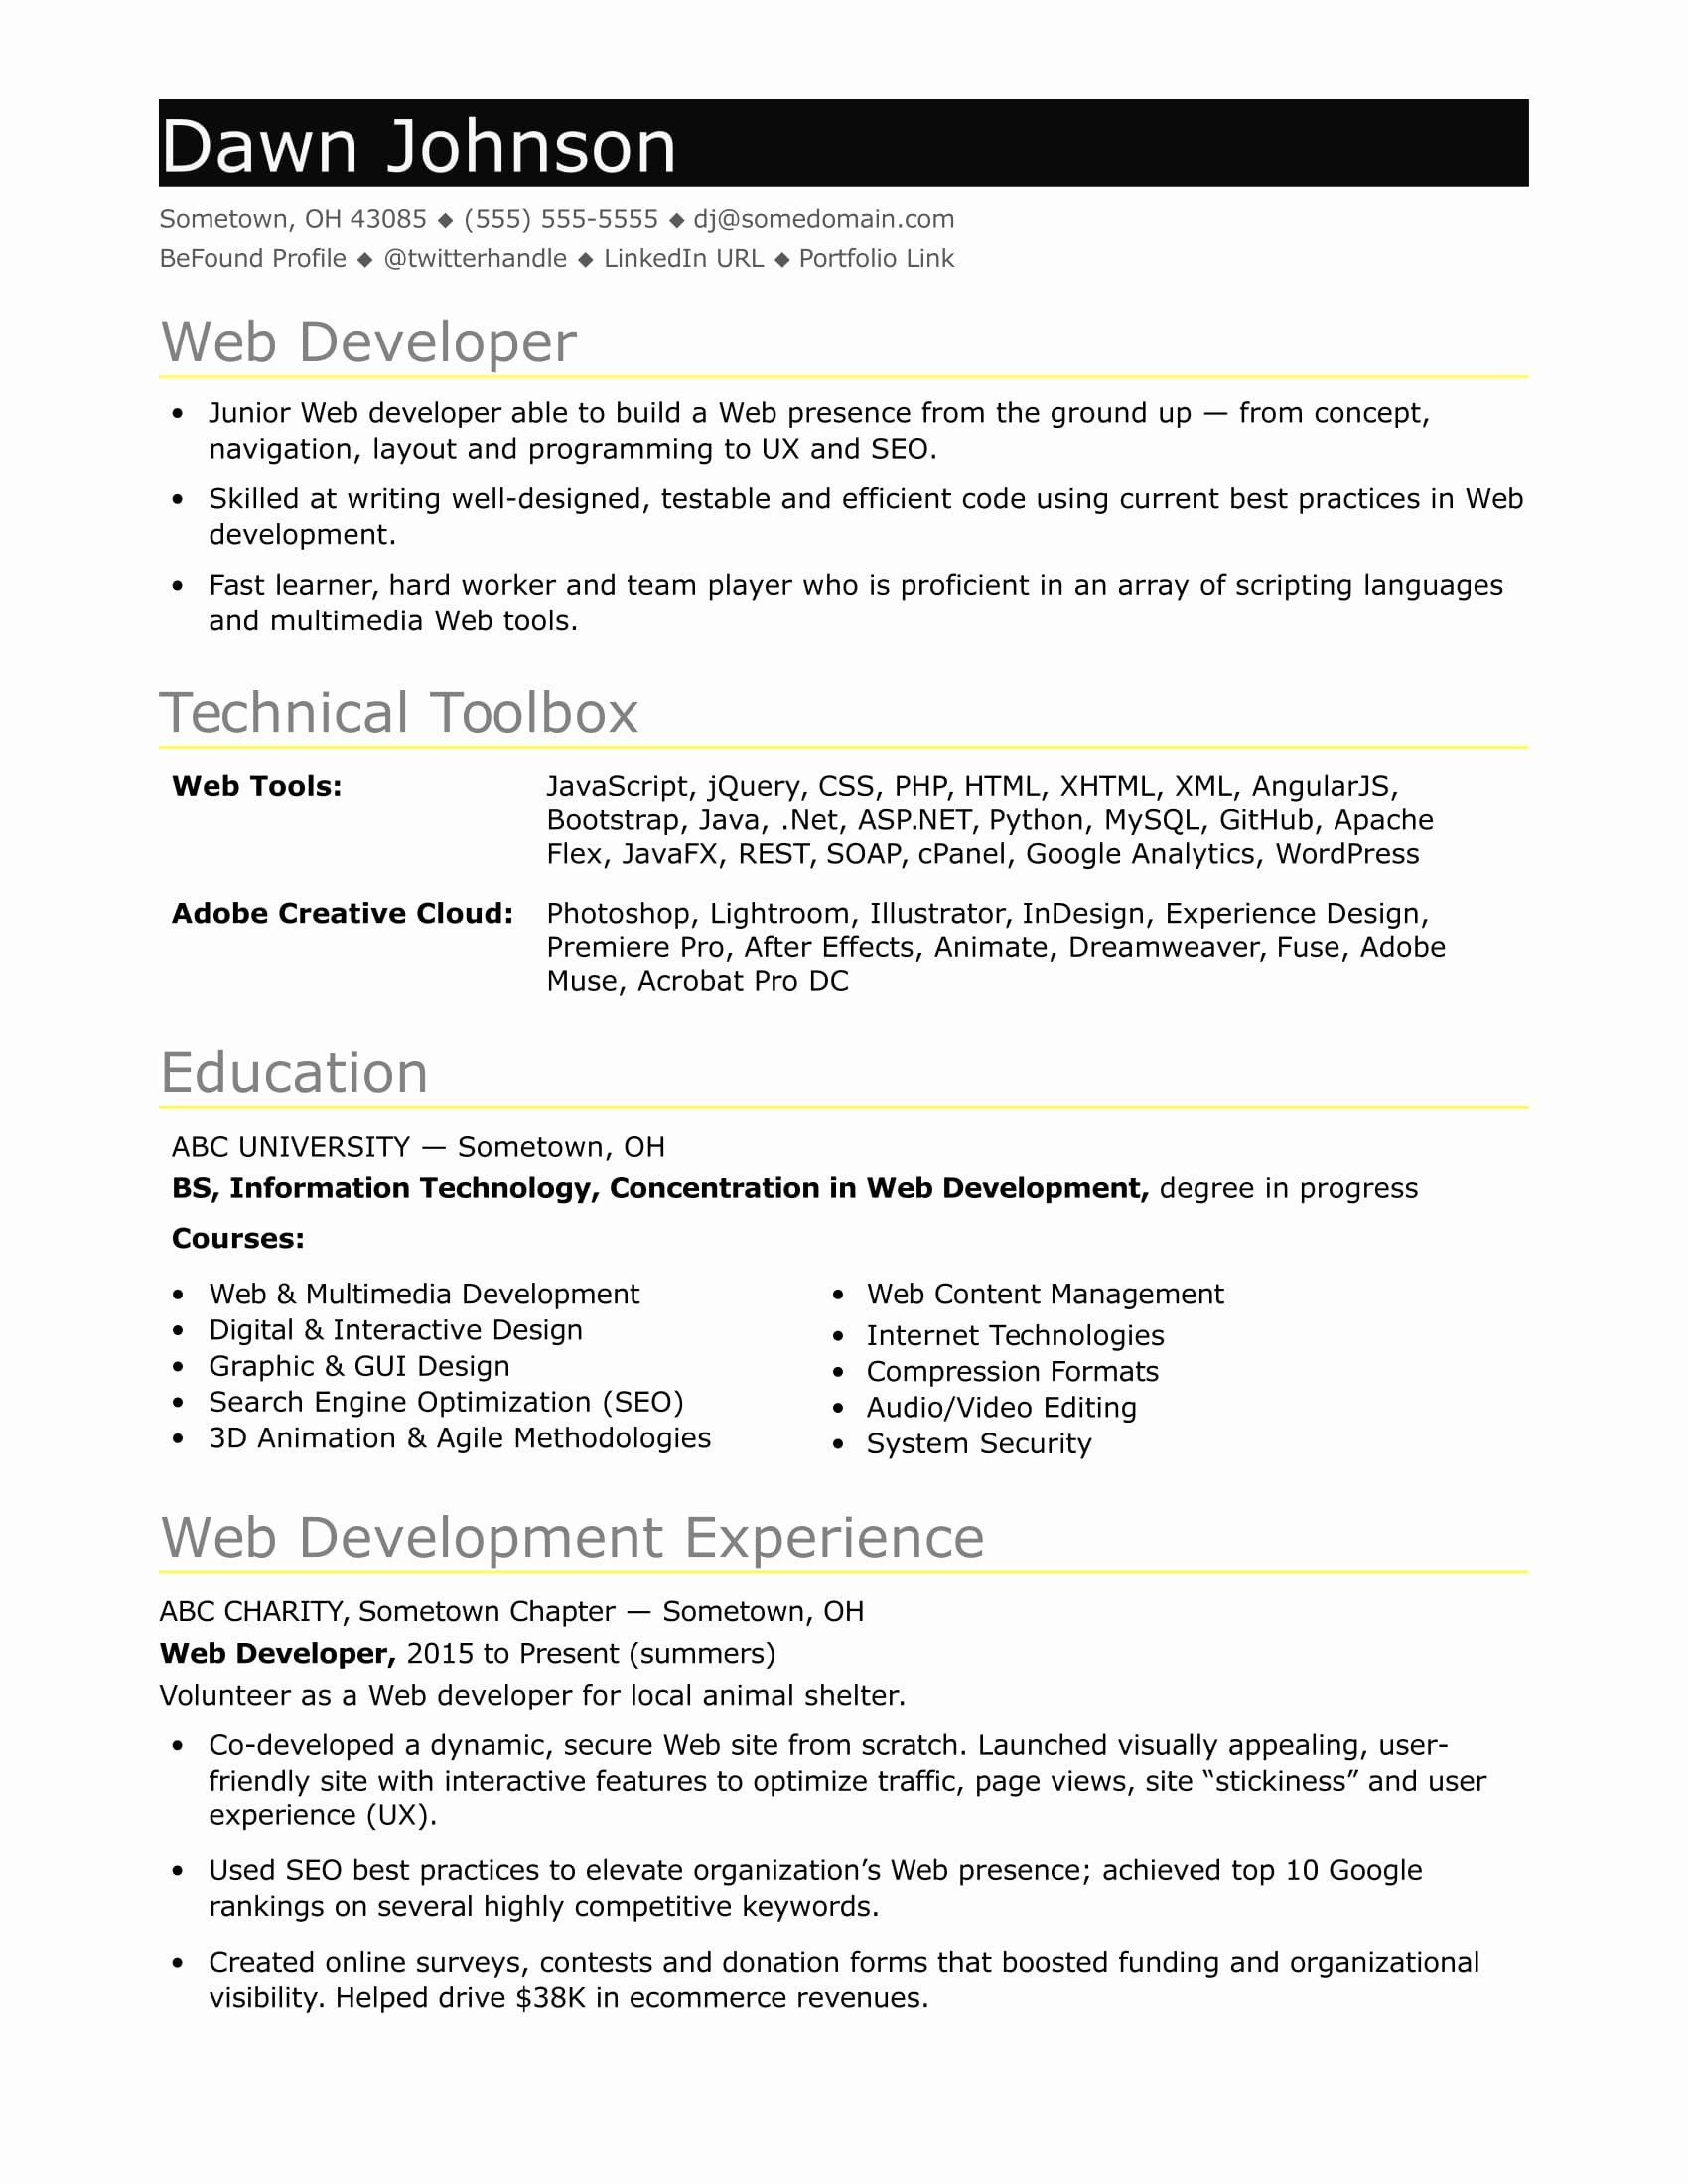 Entry Level Information Technology Resume With No Experience Best Of Sample Resume For An Entry Level I Web Developer Resume Resume Template Job Resume Samples